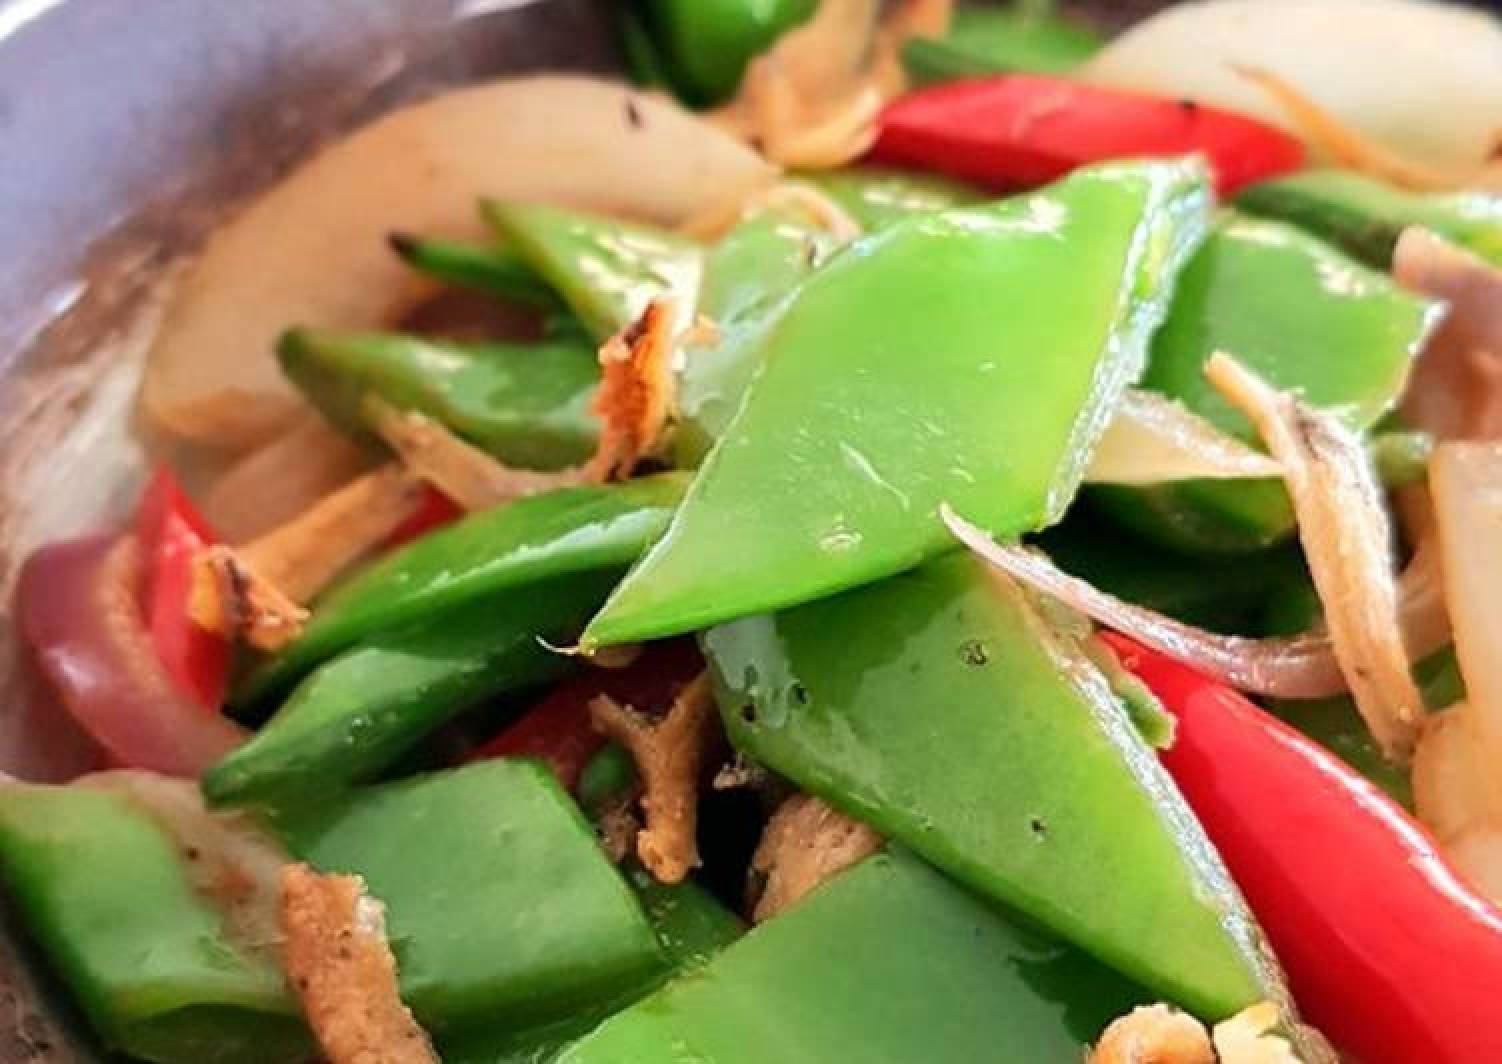 Snow Peas with Caramelized Onions and Crispy Anchovies